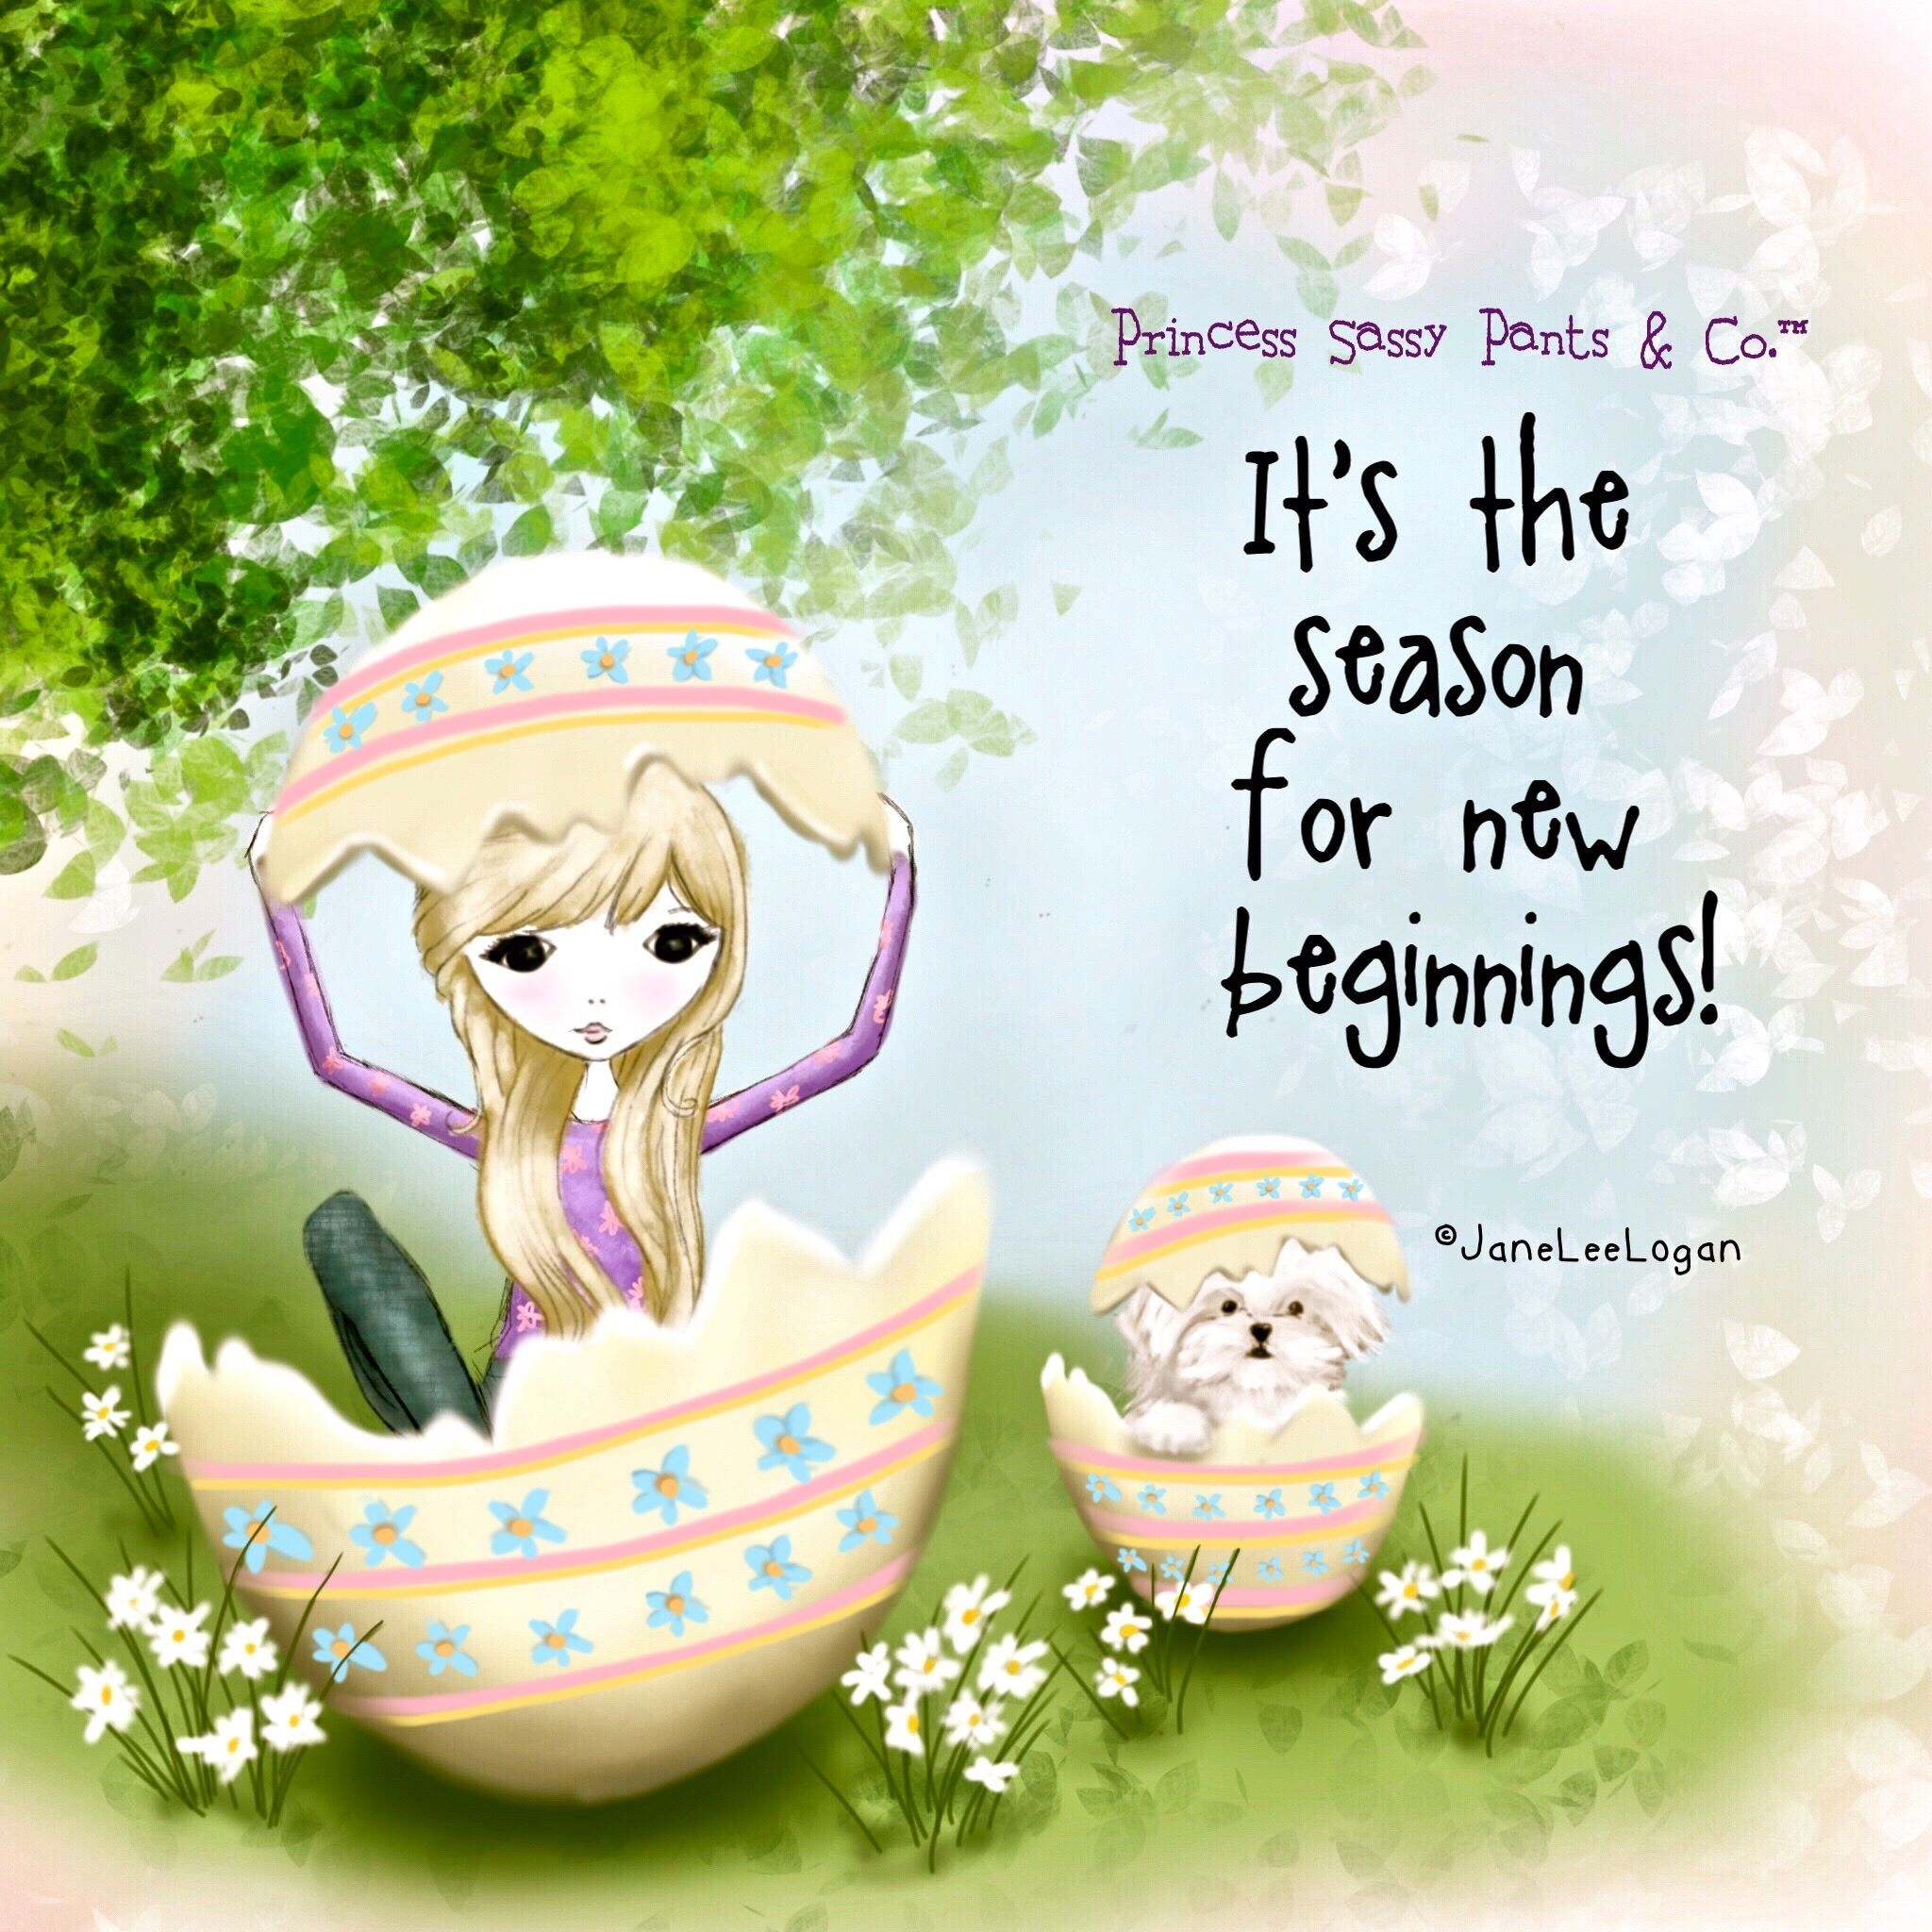 Life Quotes Easter Beginnings Quotes Easter New Beginnings Quotes 2020 New Beginning Quotes New Beginning Qu Sassy Pants Sassy Pants Quotes Cutie Quote